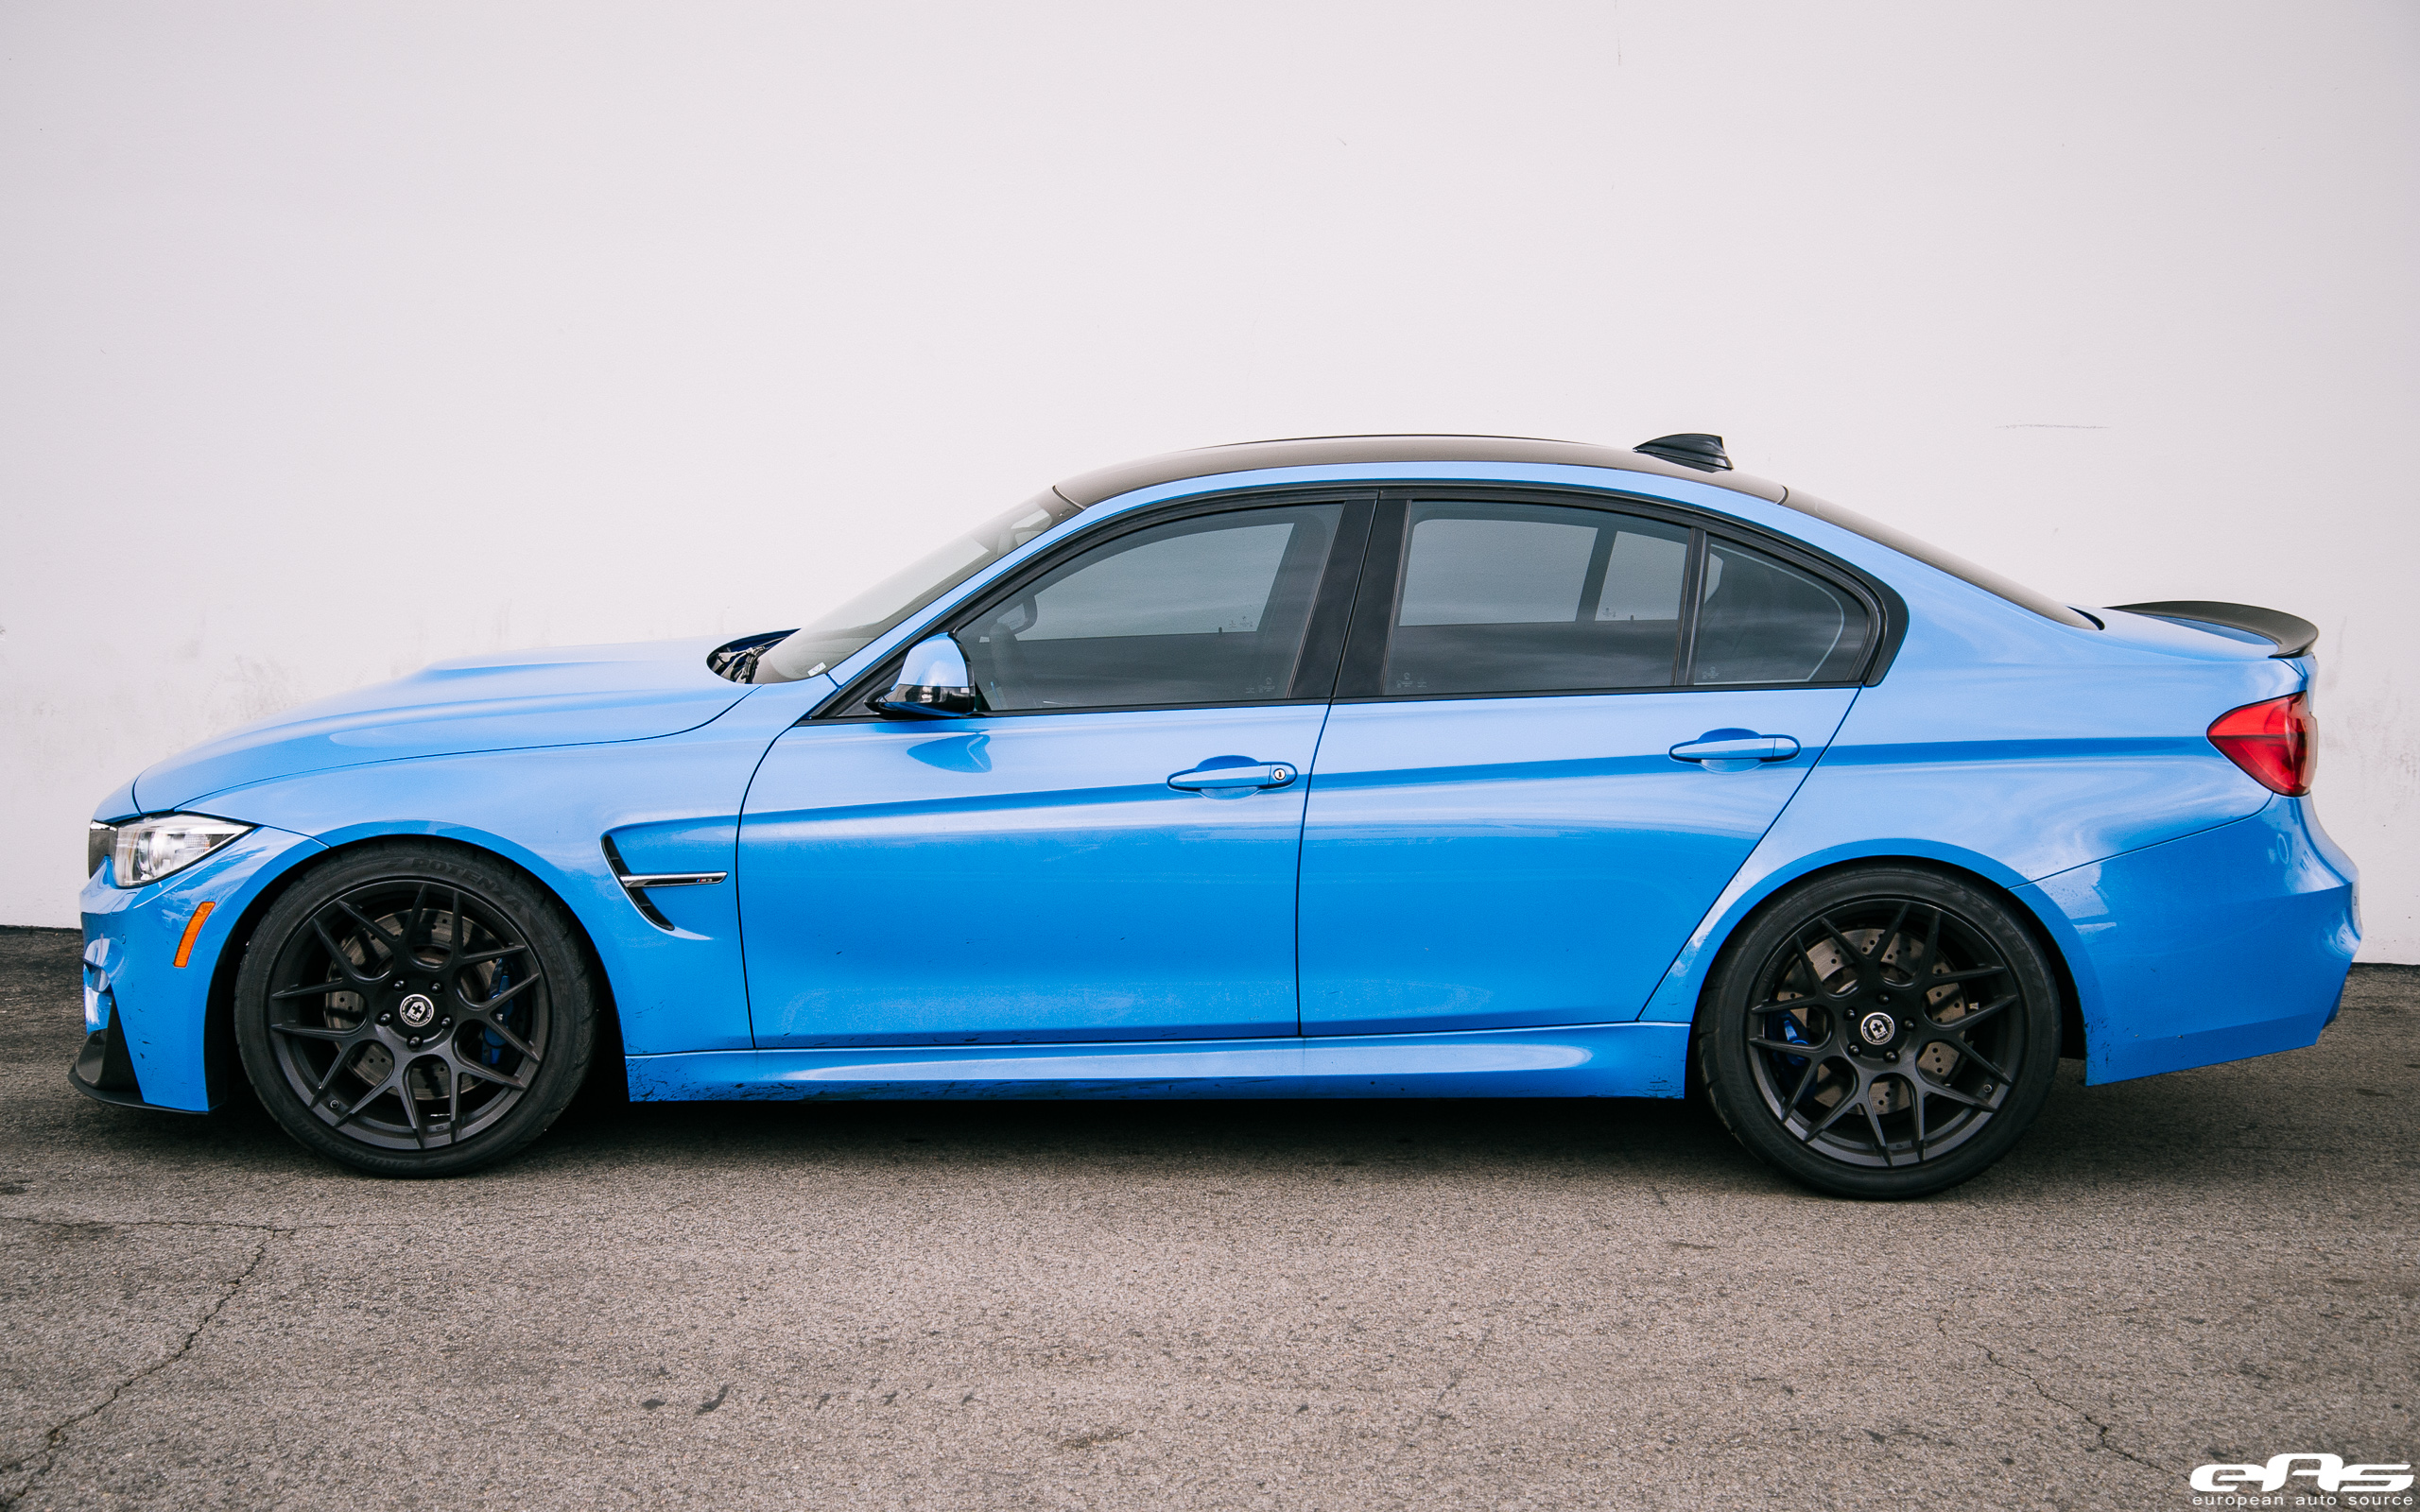 Yas Marina Blue Bmw M3 Gets Some Racing Upgrades